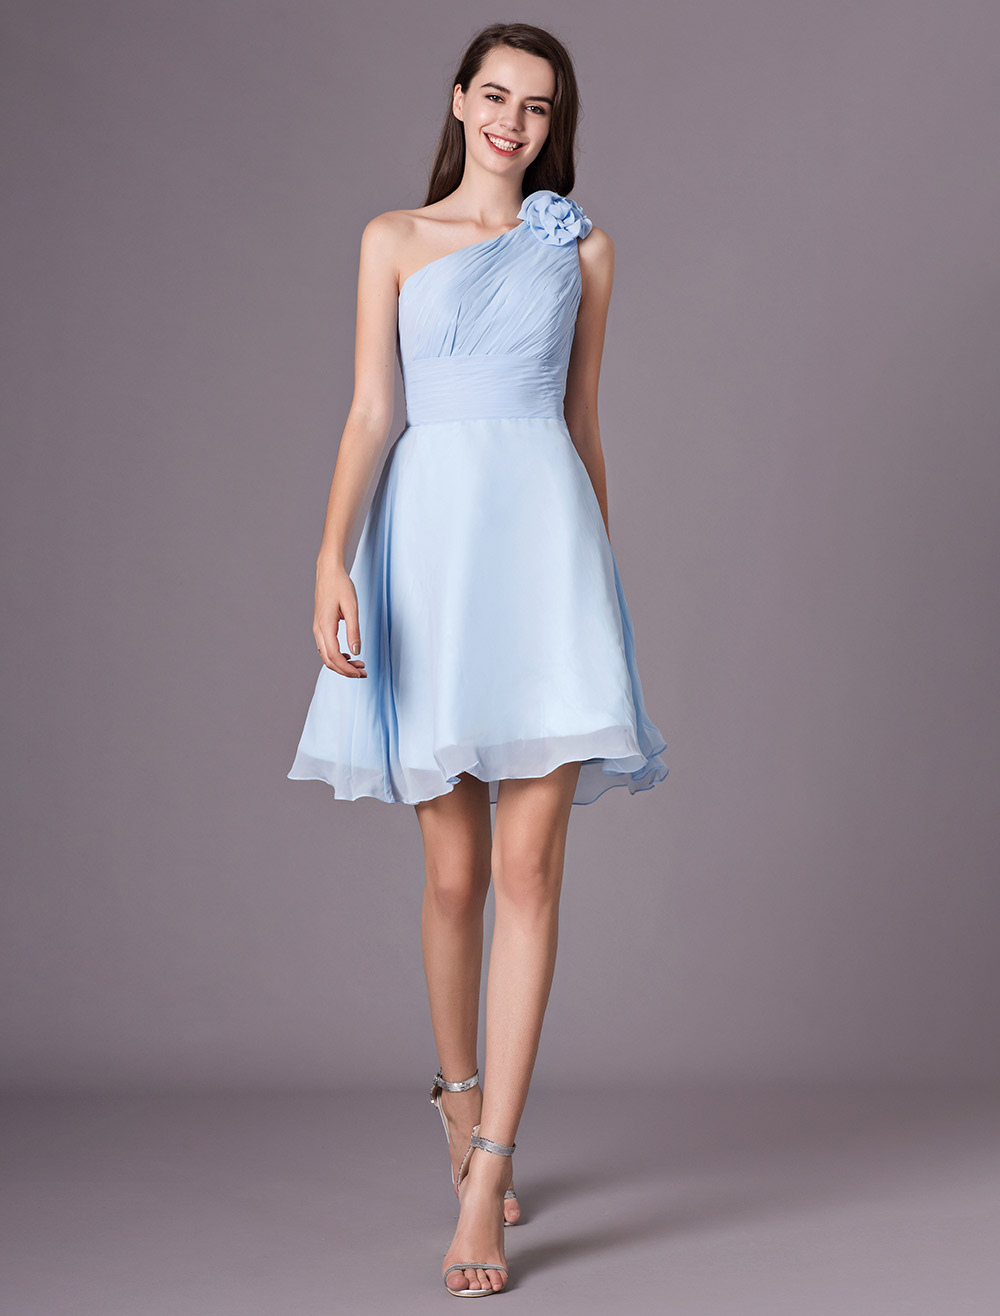 9d2b9ad9f960 Chiffon Bridesmaid Dress Baby blue One Shoulder Knee Length Flowers Prom  Dress-No.1 ...